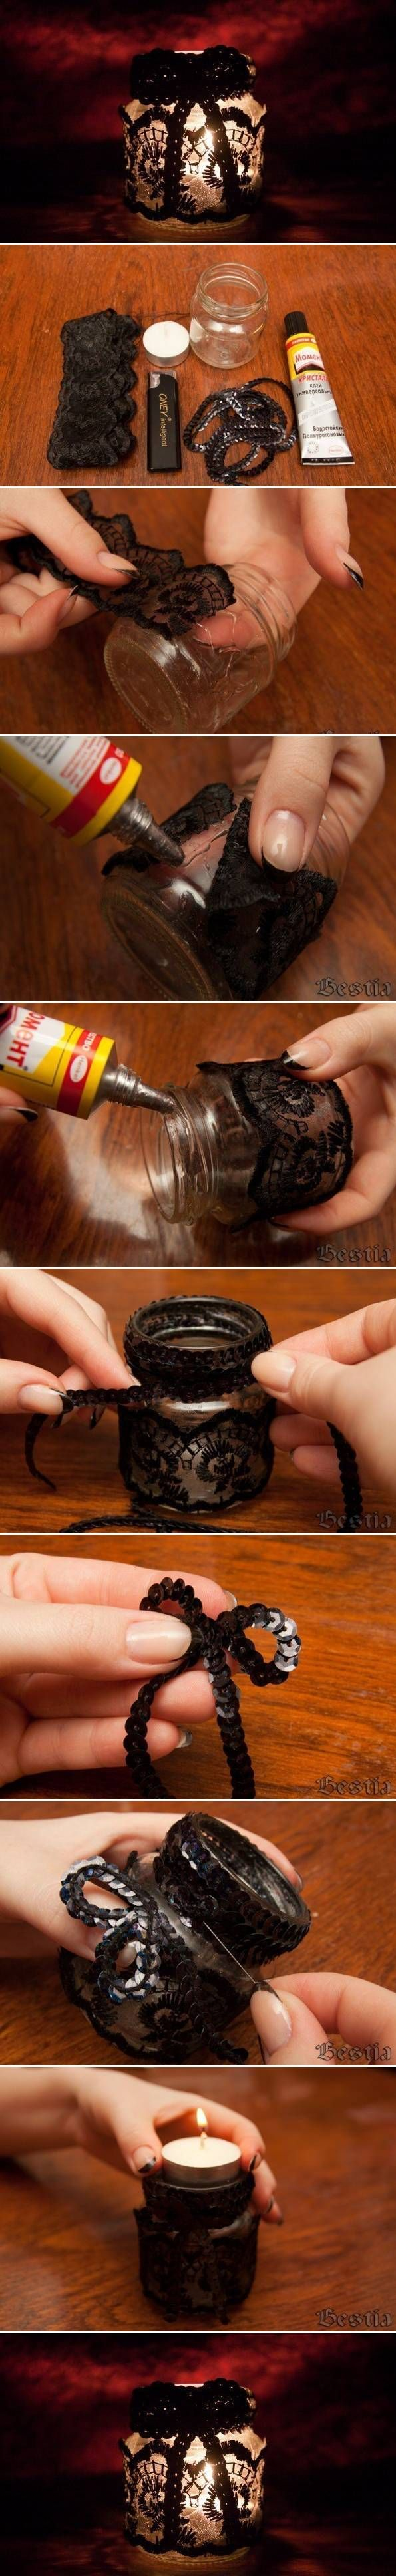 DIY Lace Decorated Candle Holder DIY Projects